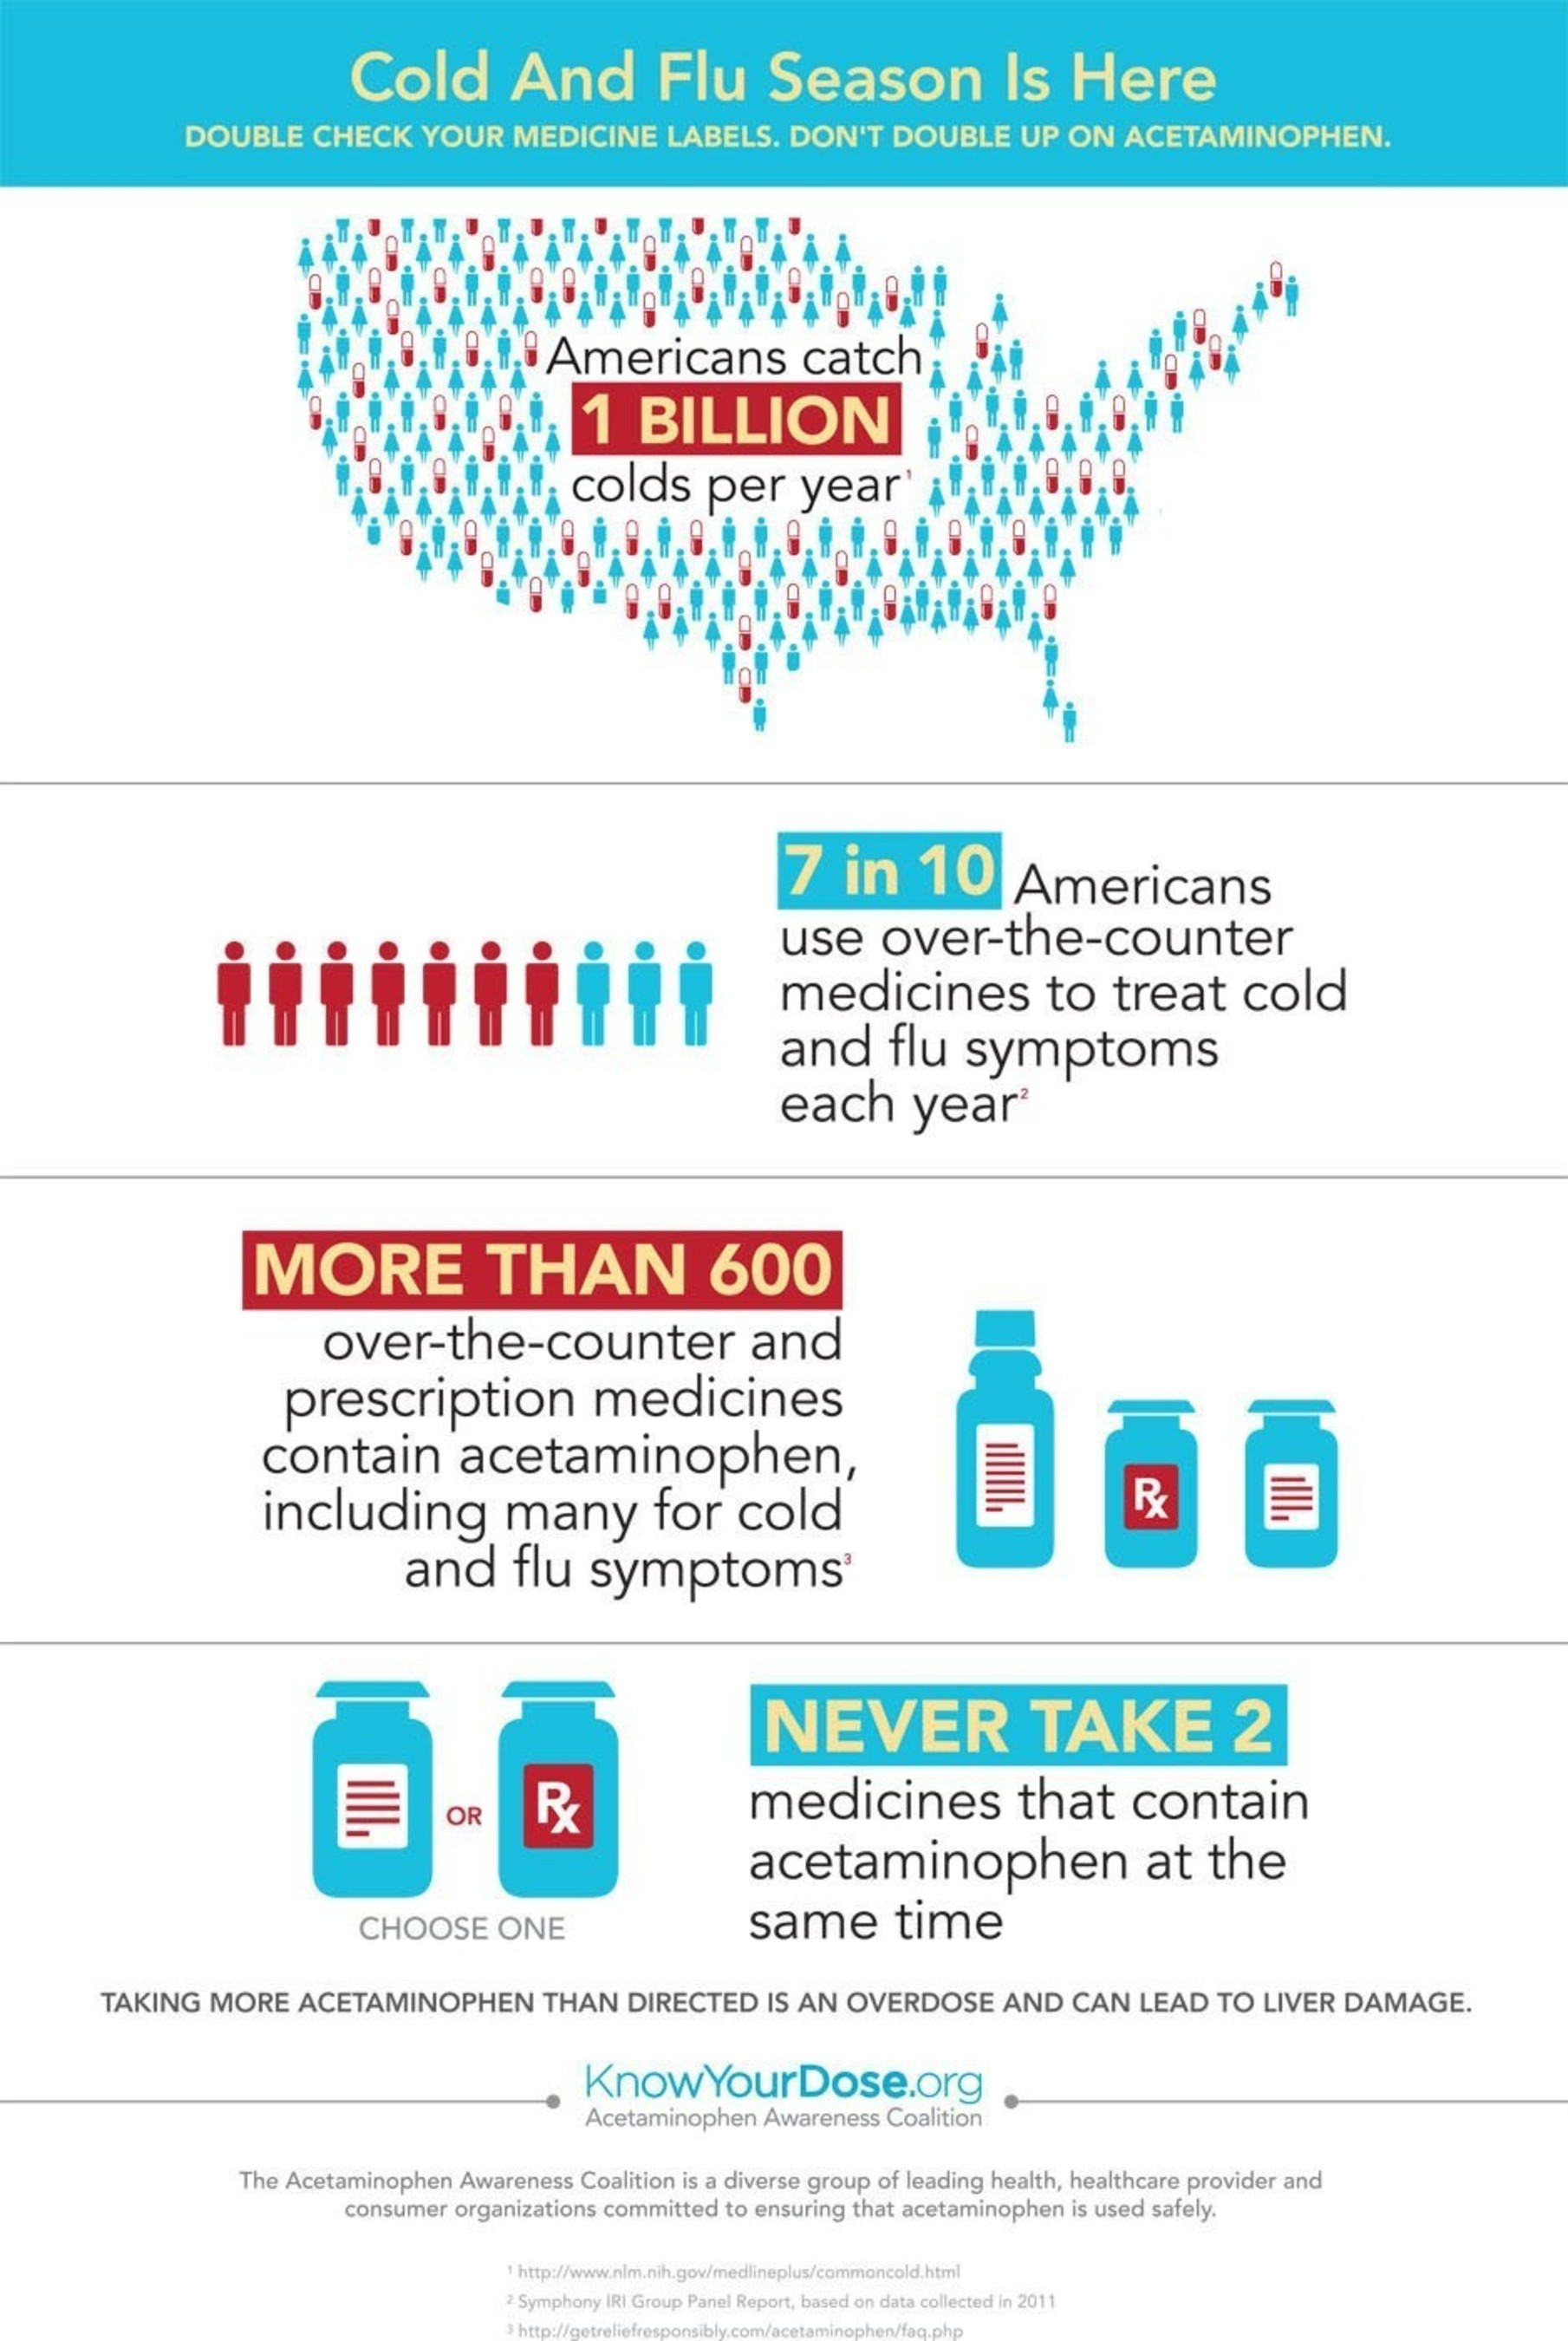 Double check; Don't double up on acetaminophen. (PRNewsFoto/Acetaminophen Awareness Coalition)